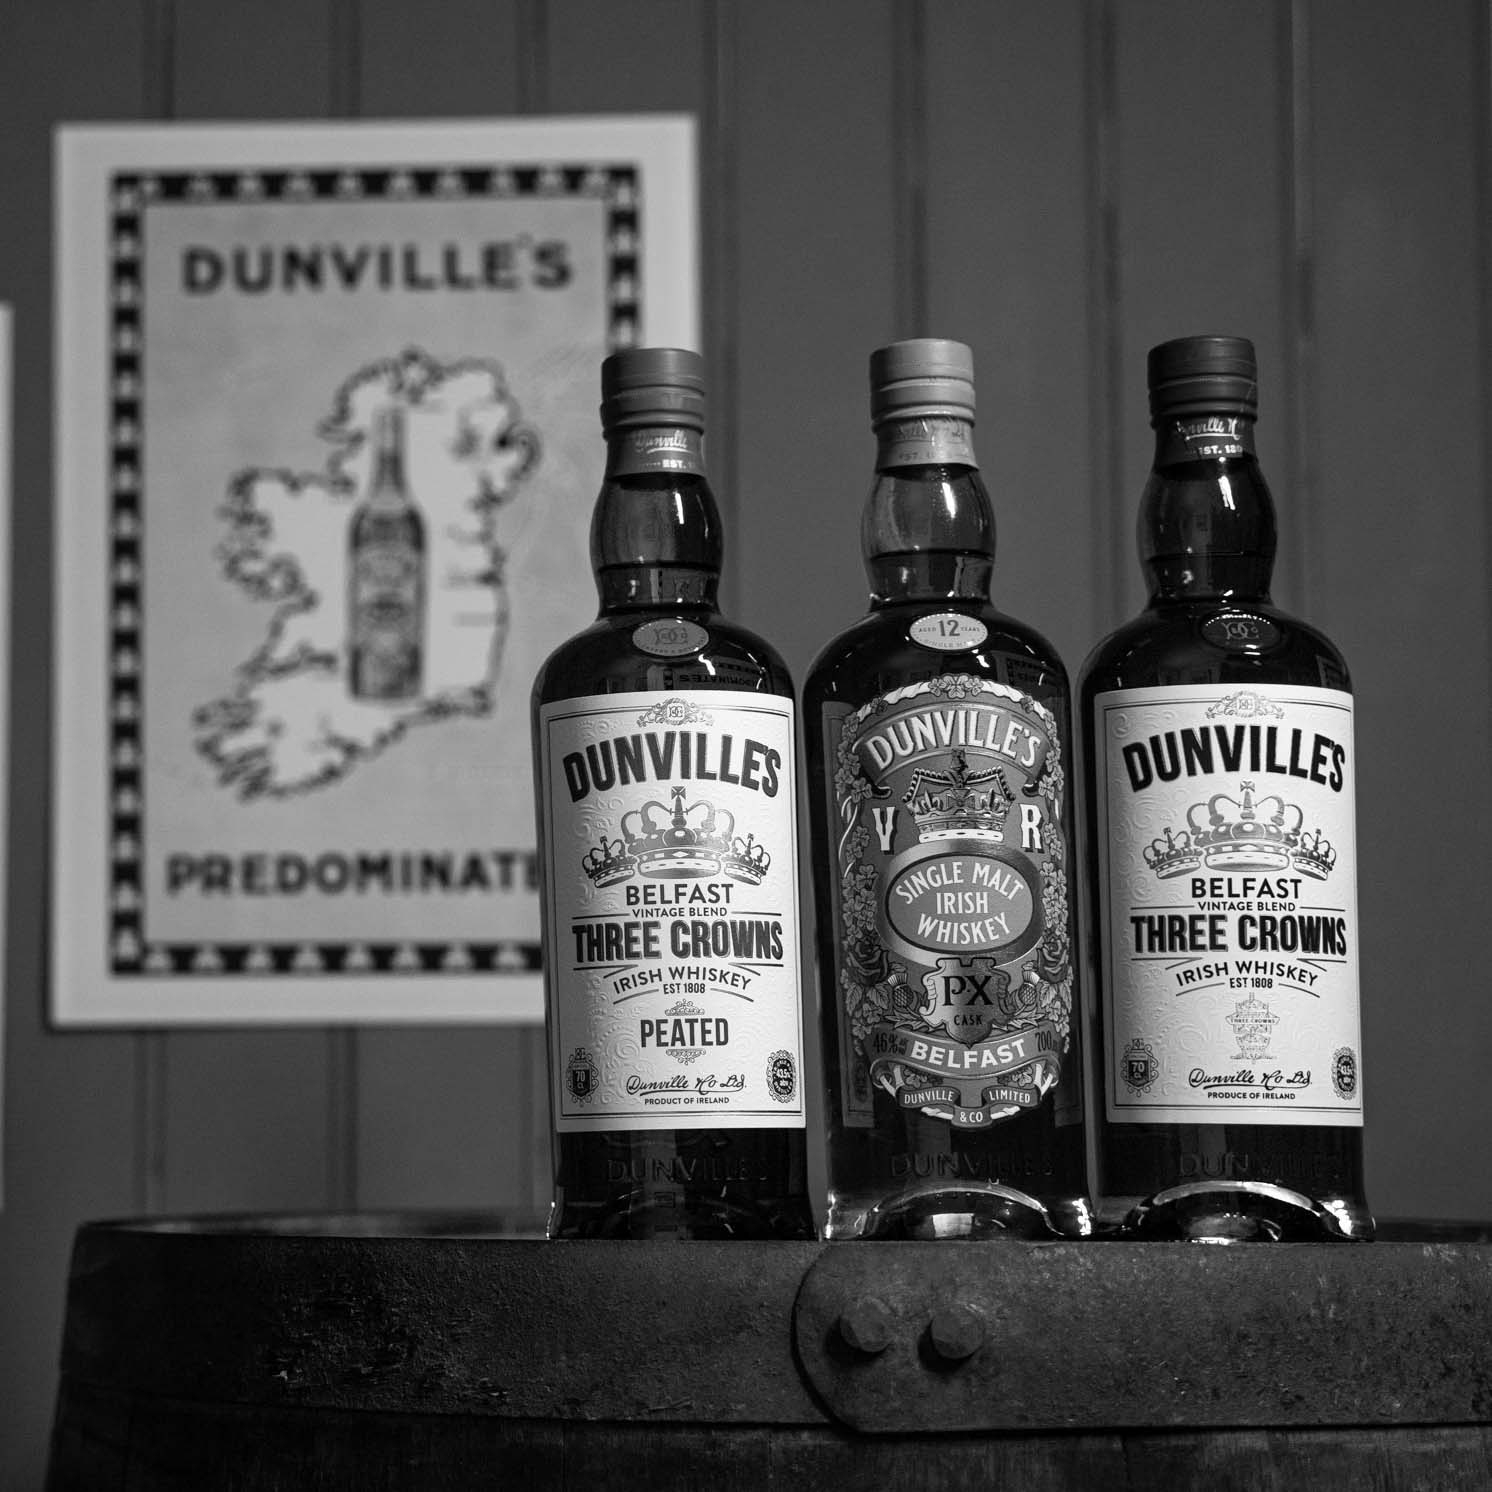 Dunville's Irish Whiskey website goes live